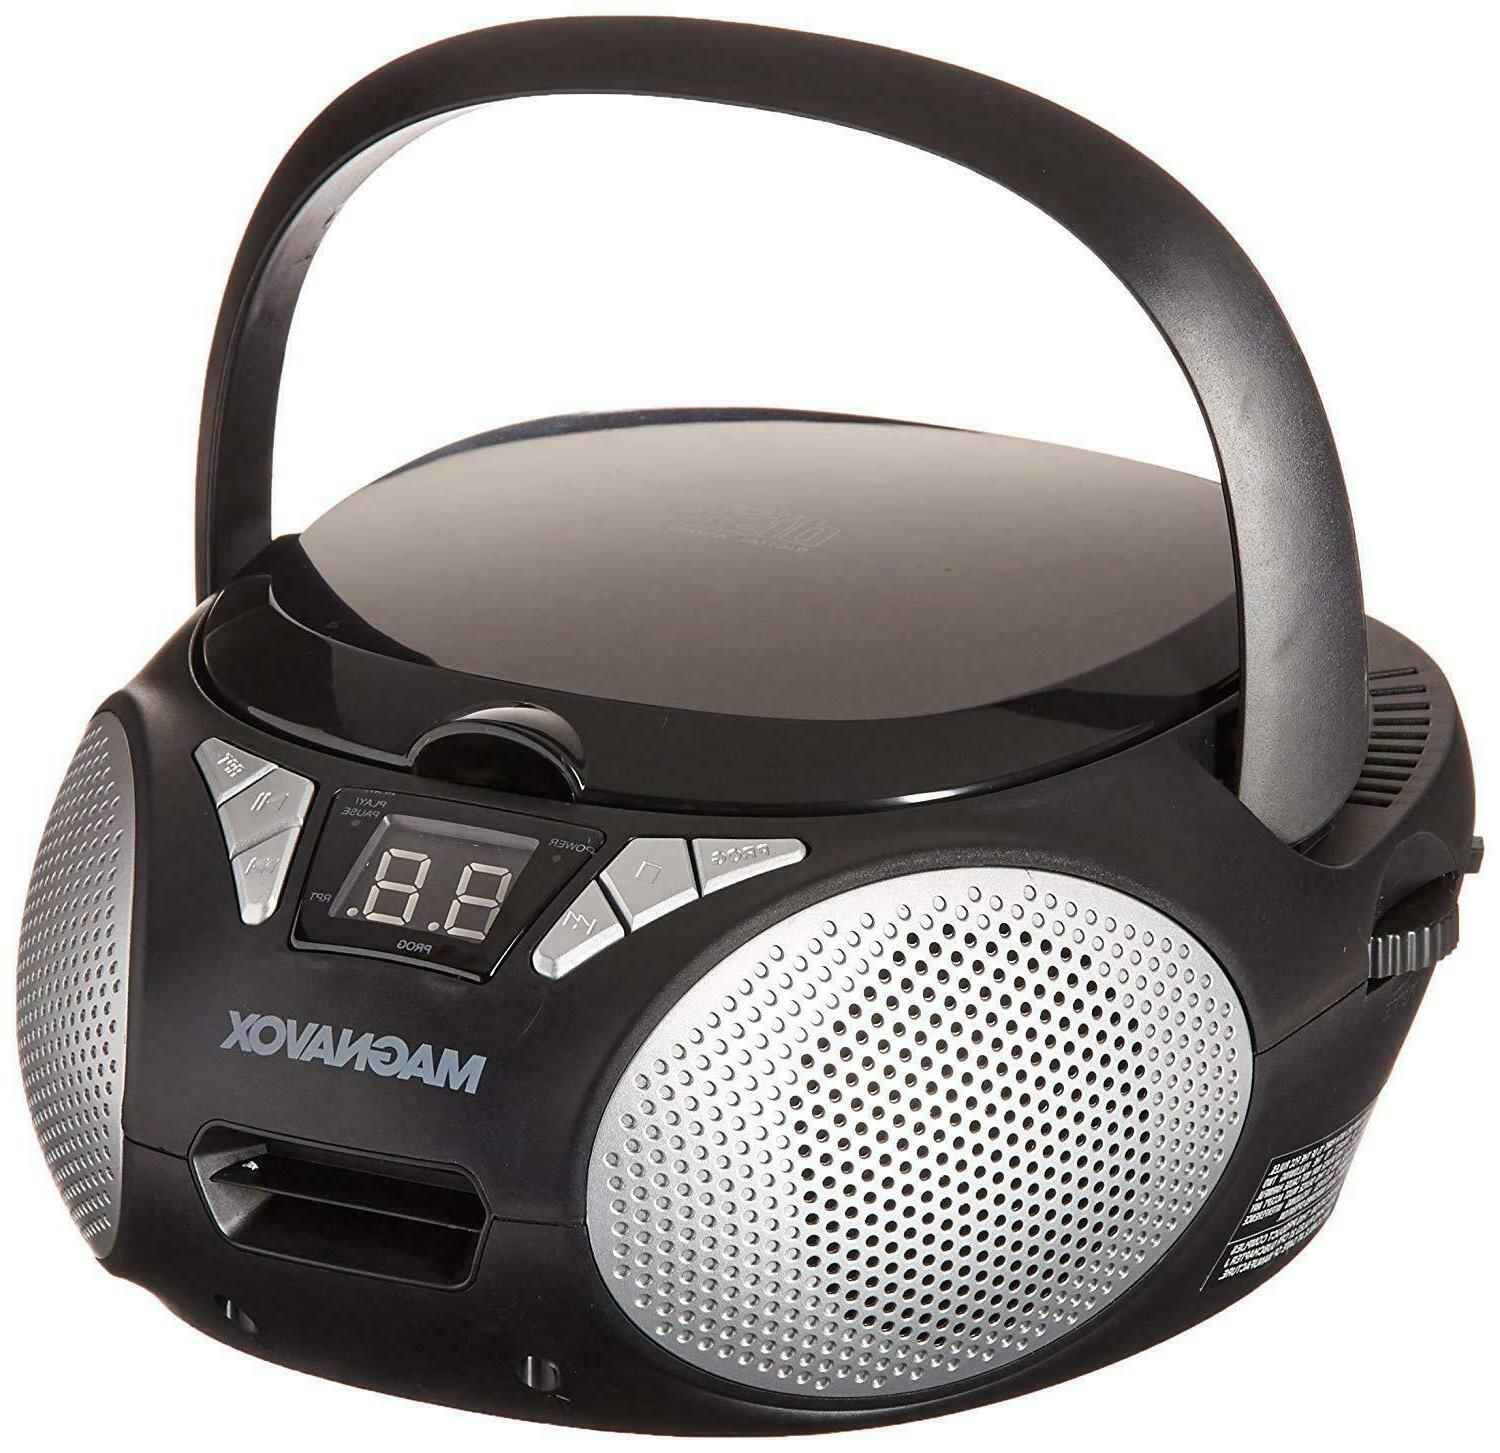 Portable Stereo Cd Rw Music Player With Cassette And Am Fm R